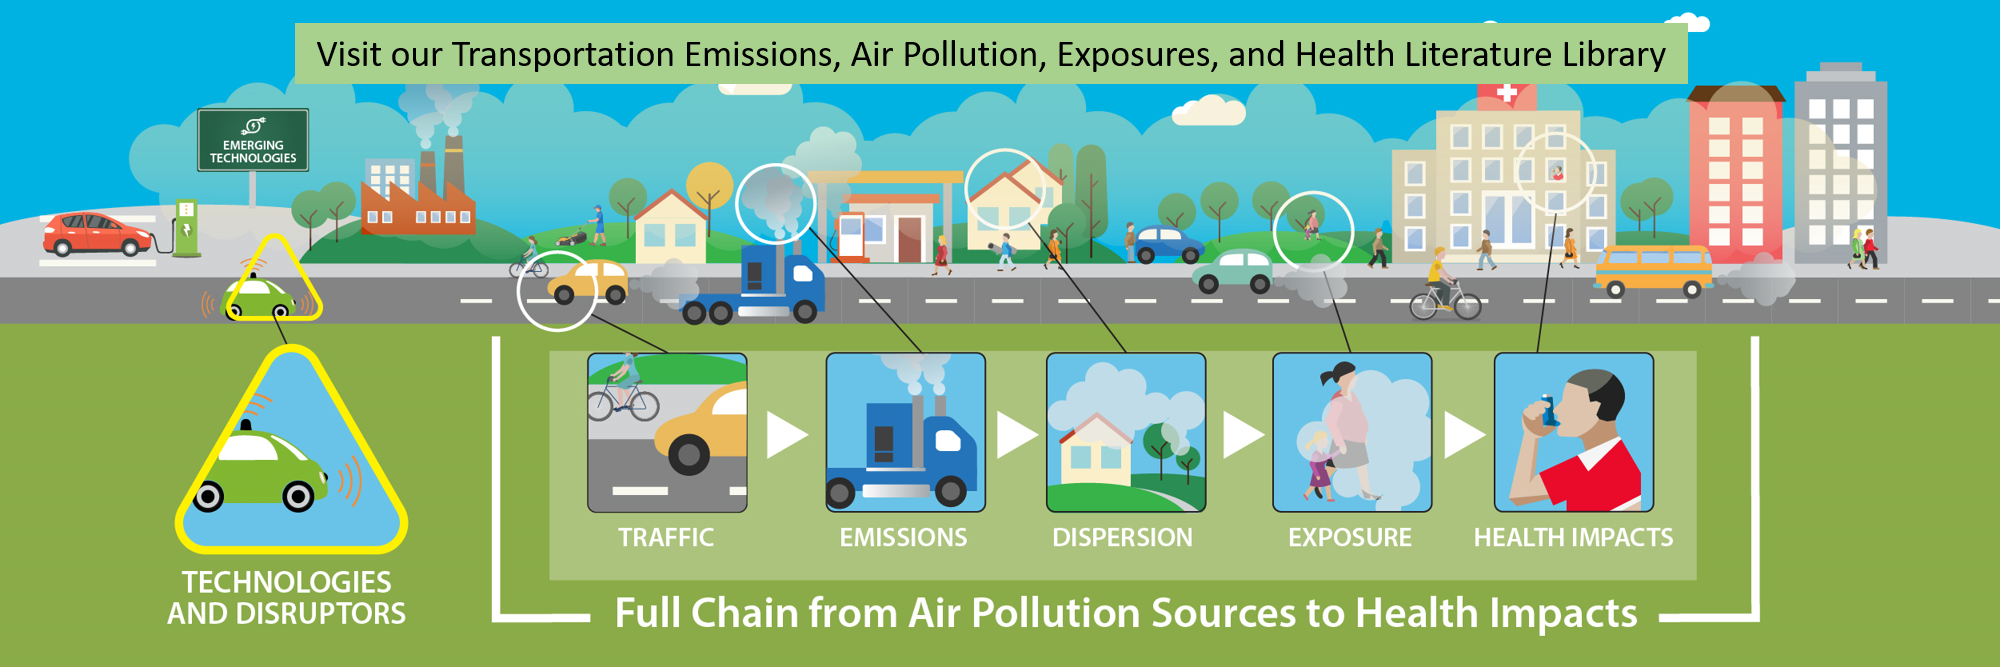 Transportation Emissions, Air Pollution, Exposures, and Health Literature Library.